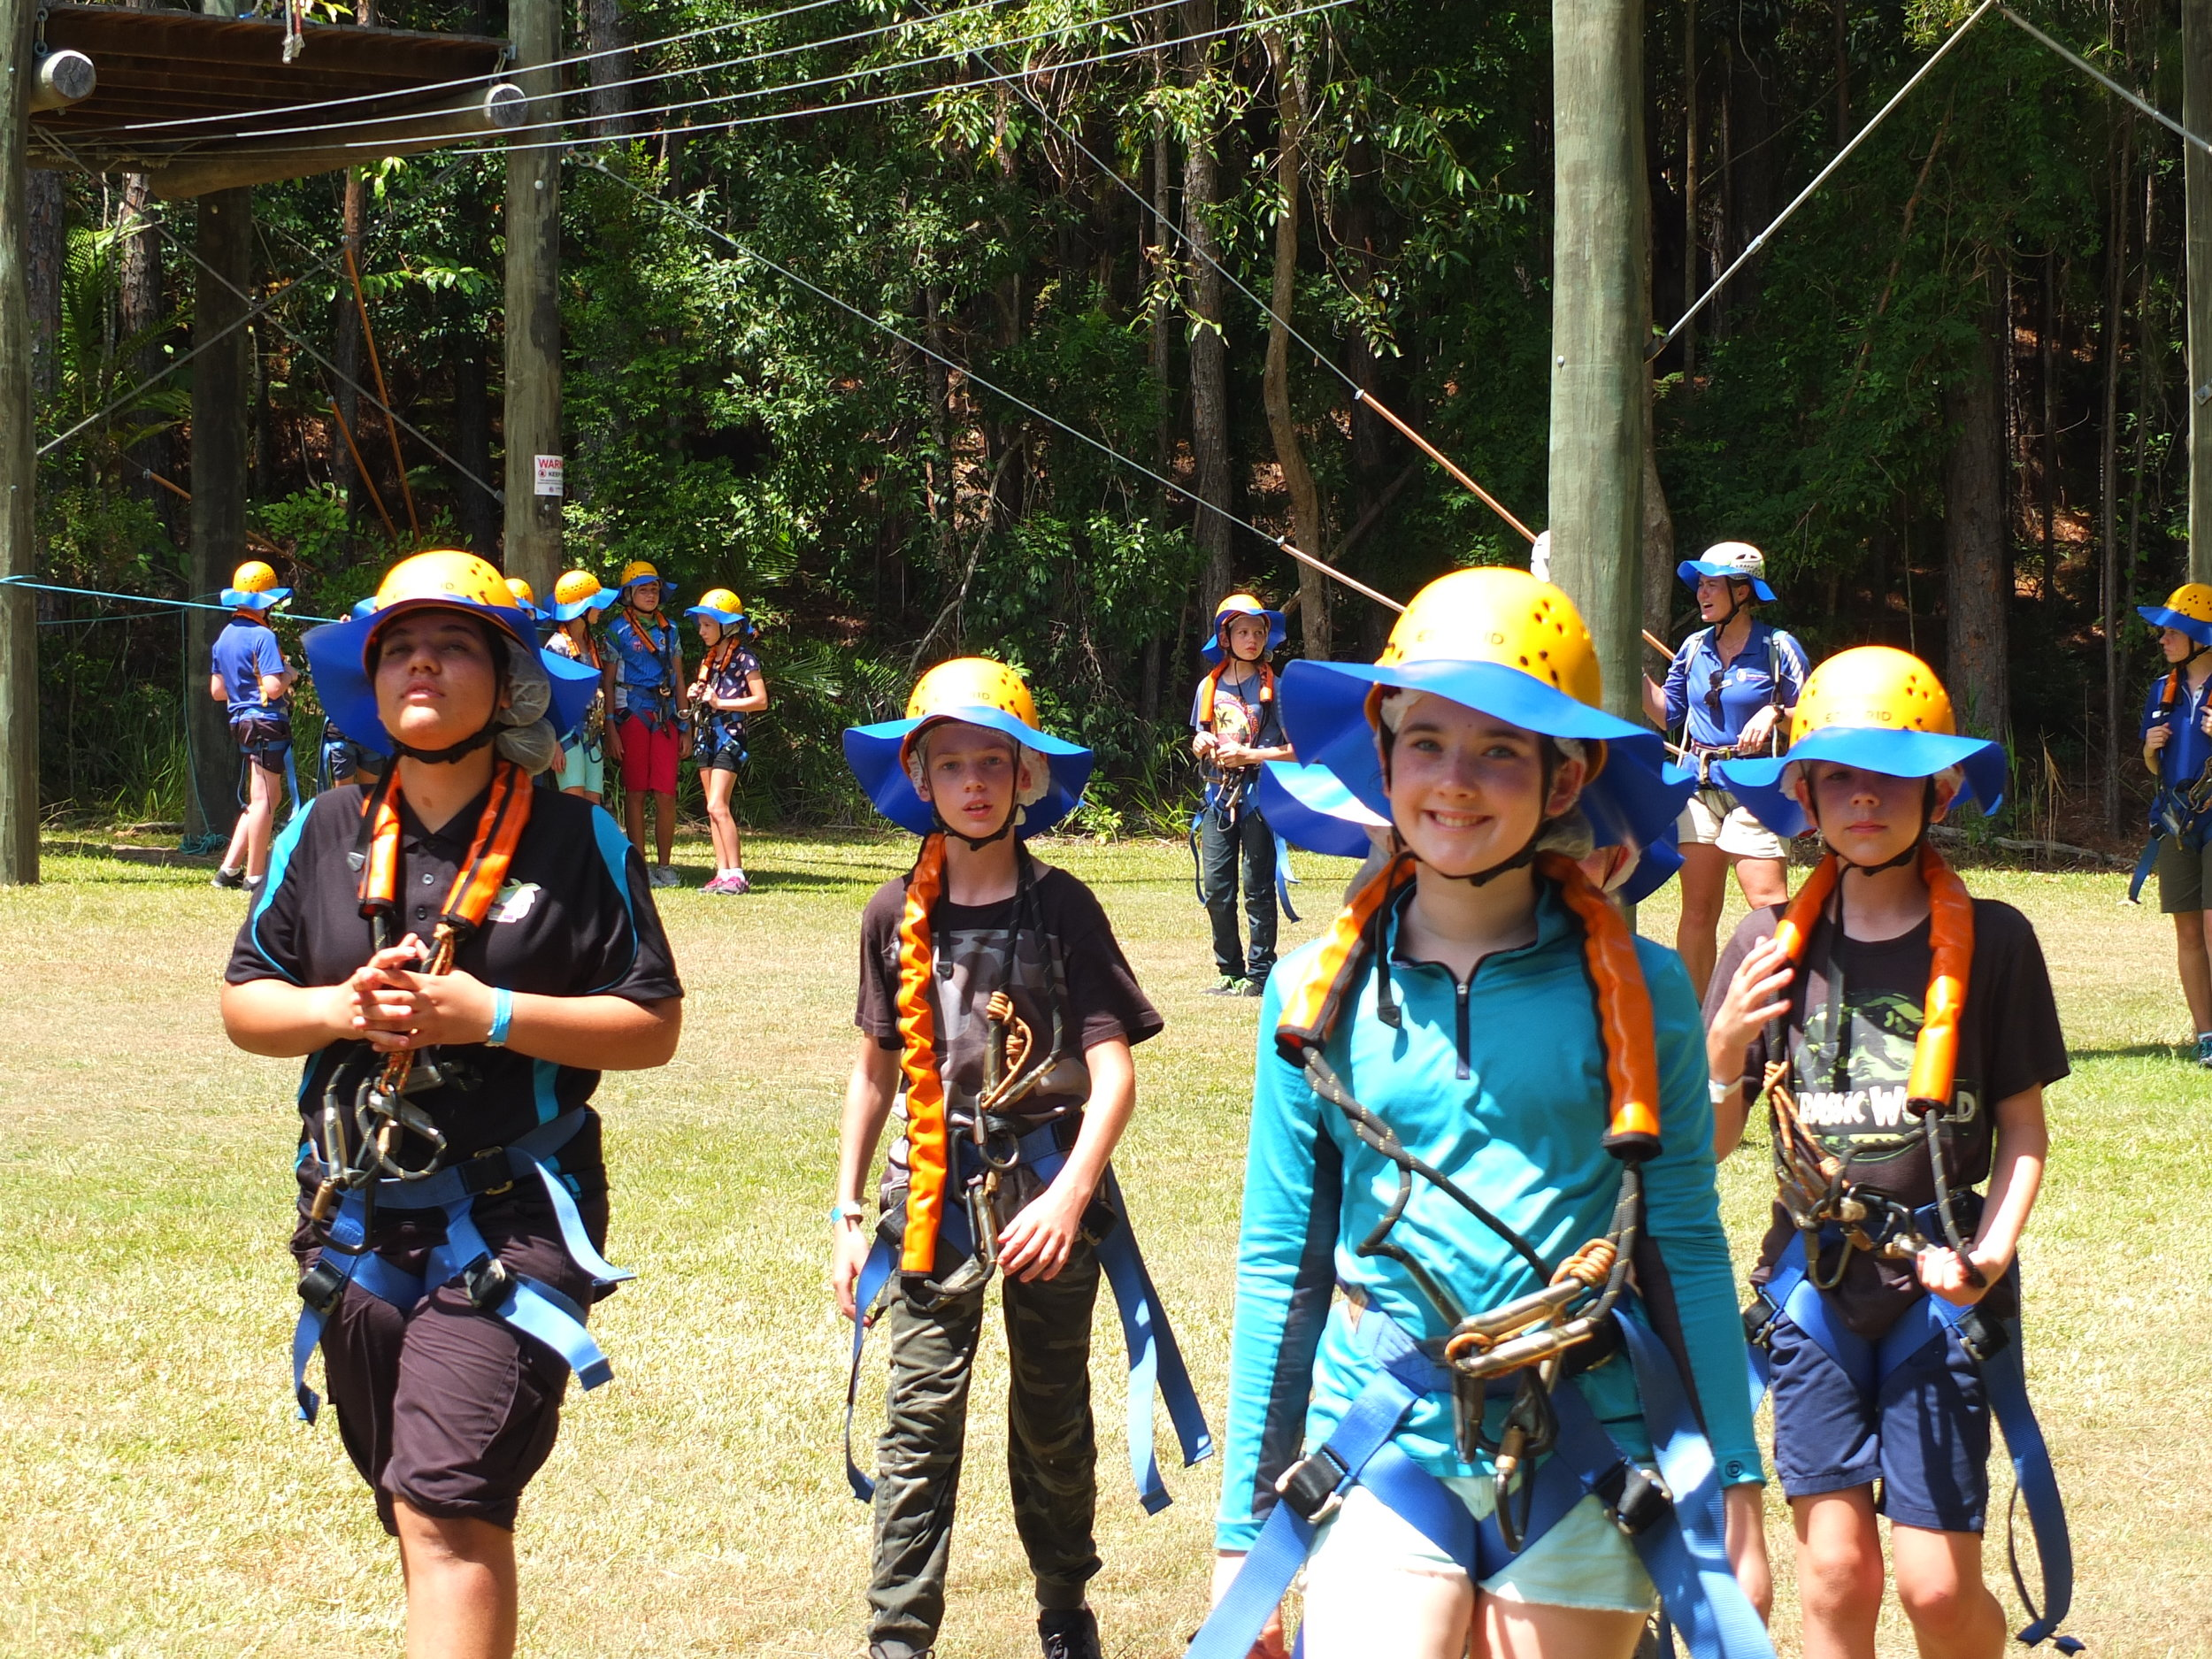 Year 7 students getting ready for the Flying Fox